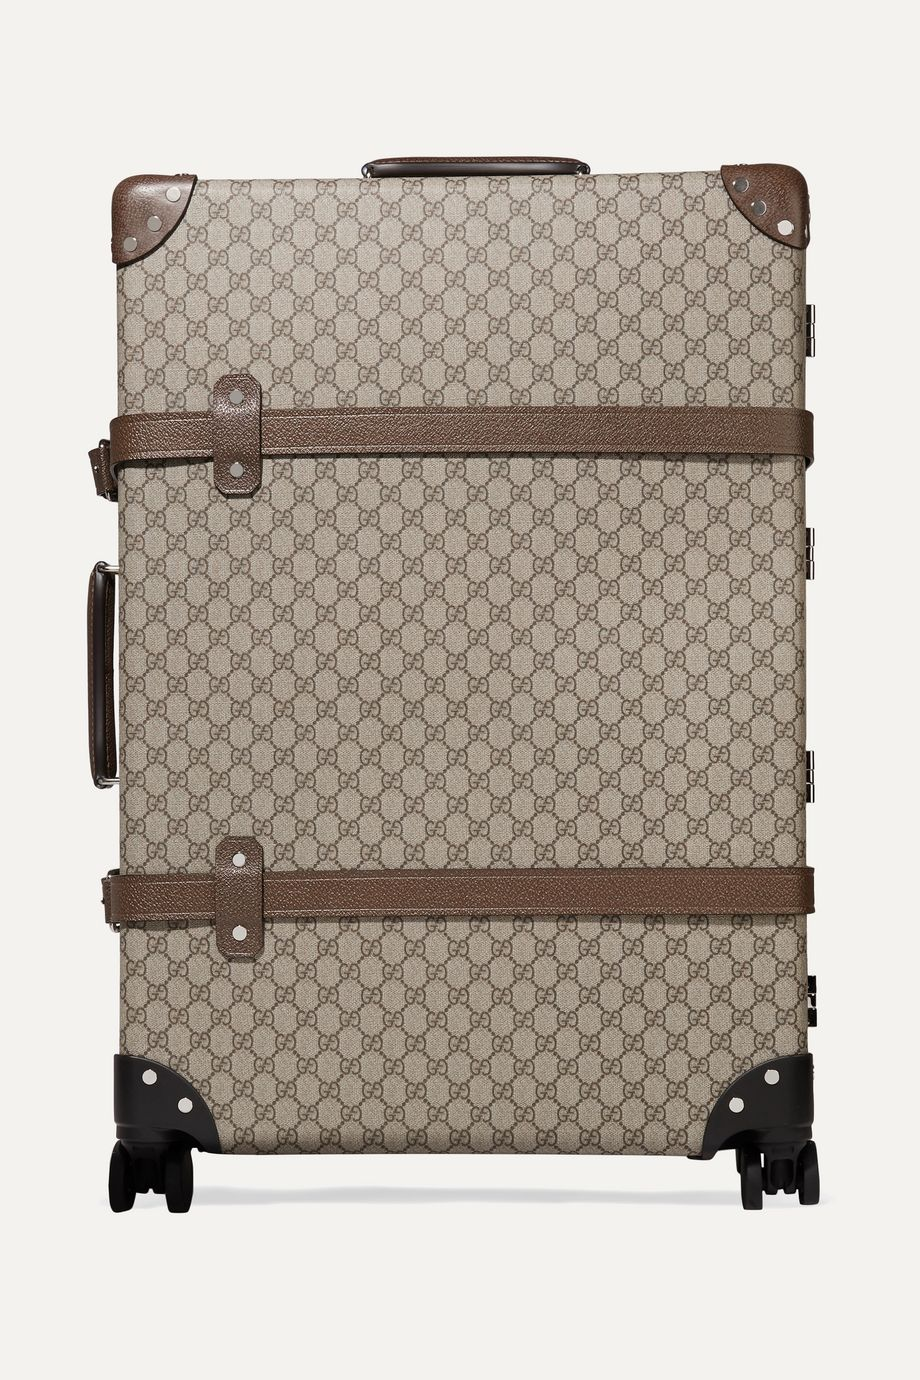 Gucci + Globe-Trotter large leather-trimmed printed coated-canvas suitcase